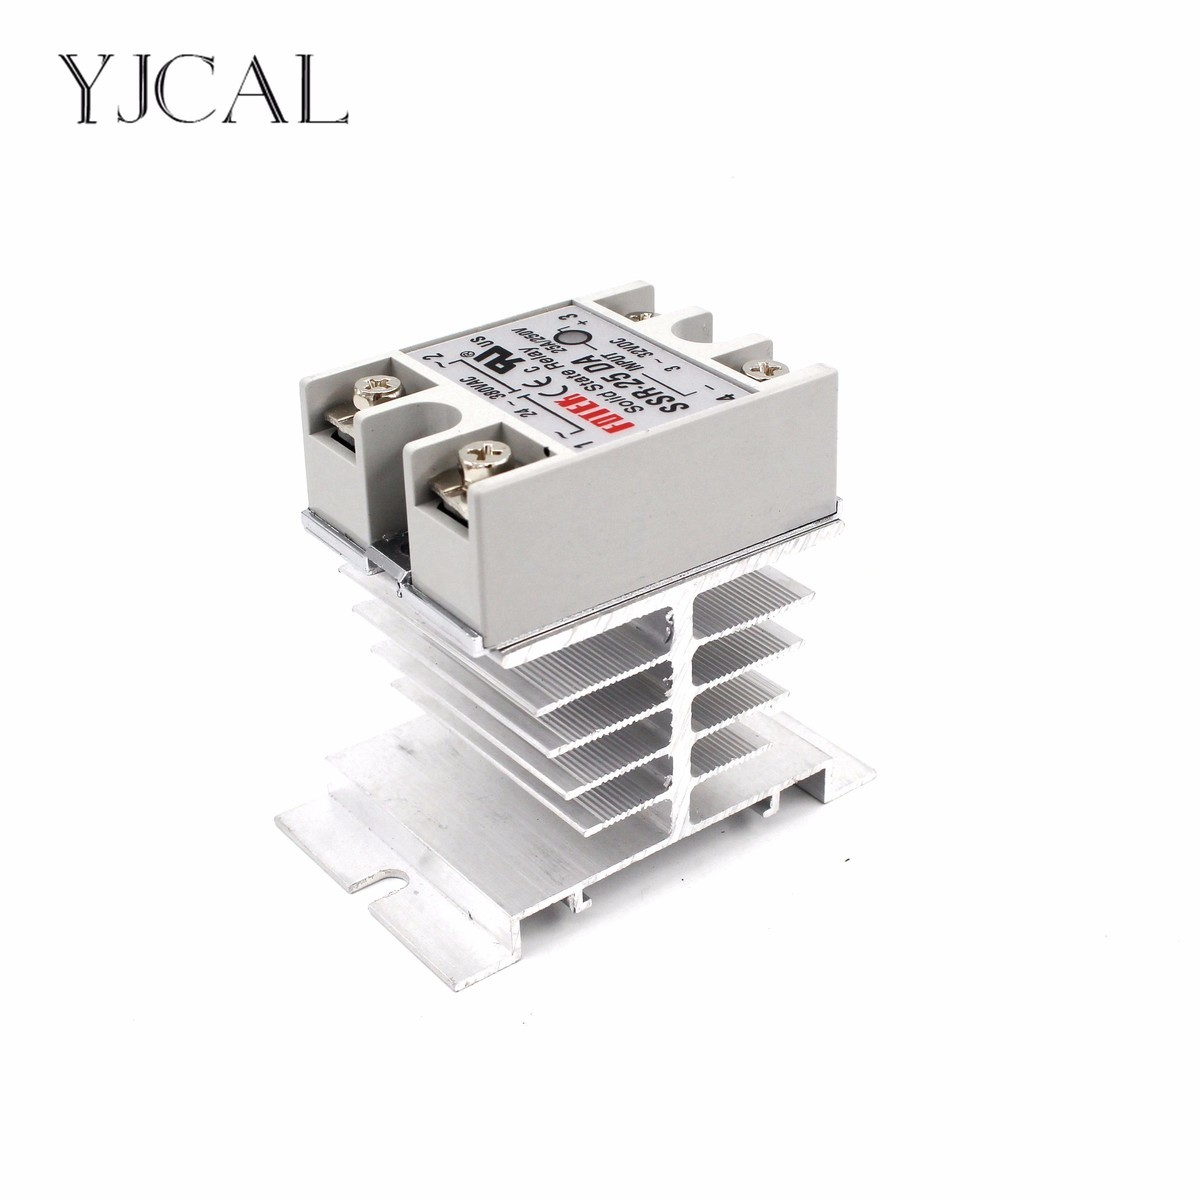 Mini Single Phase Solid State Relay SSR Aluminum Heat Sink Dissipation Radiator Newest Rail Mount For 10A-40A Relay 1pc single phase solid state relay ssr heat sink aluminum dissipation radiator l059 new hot